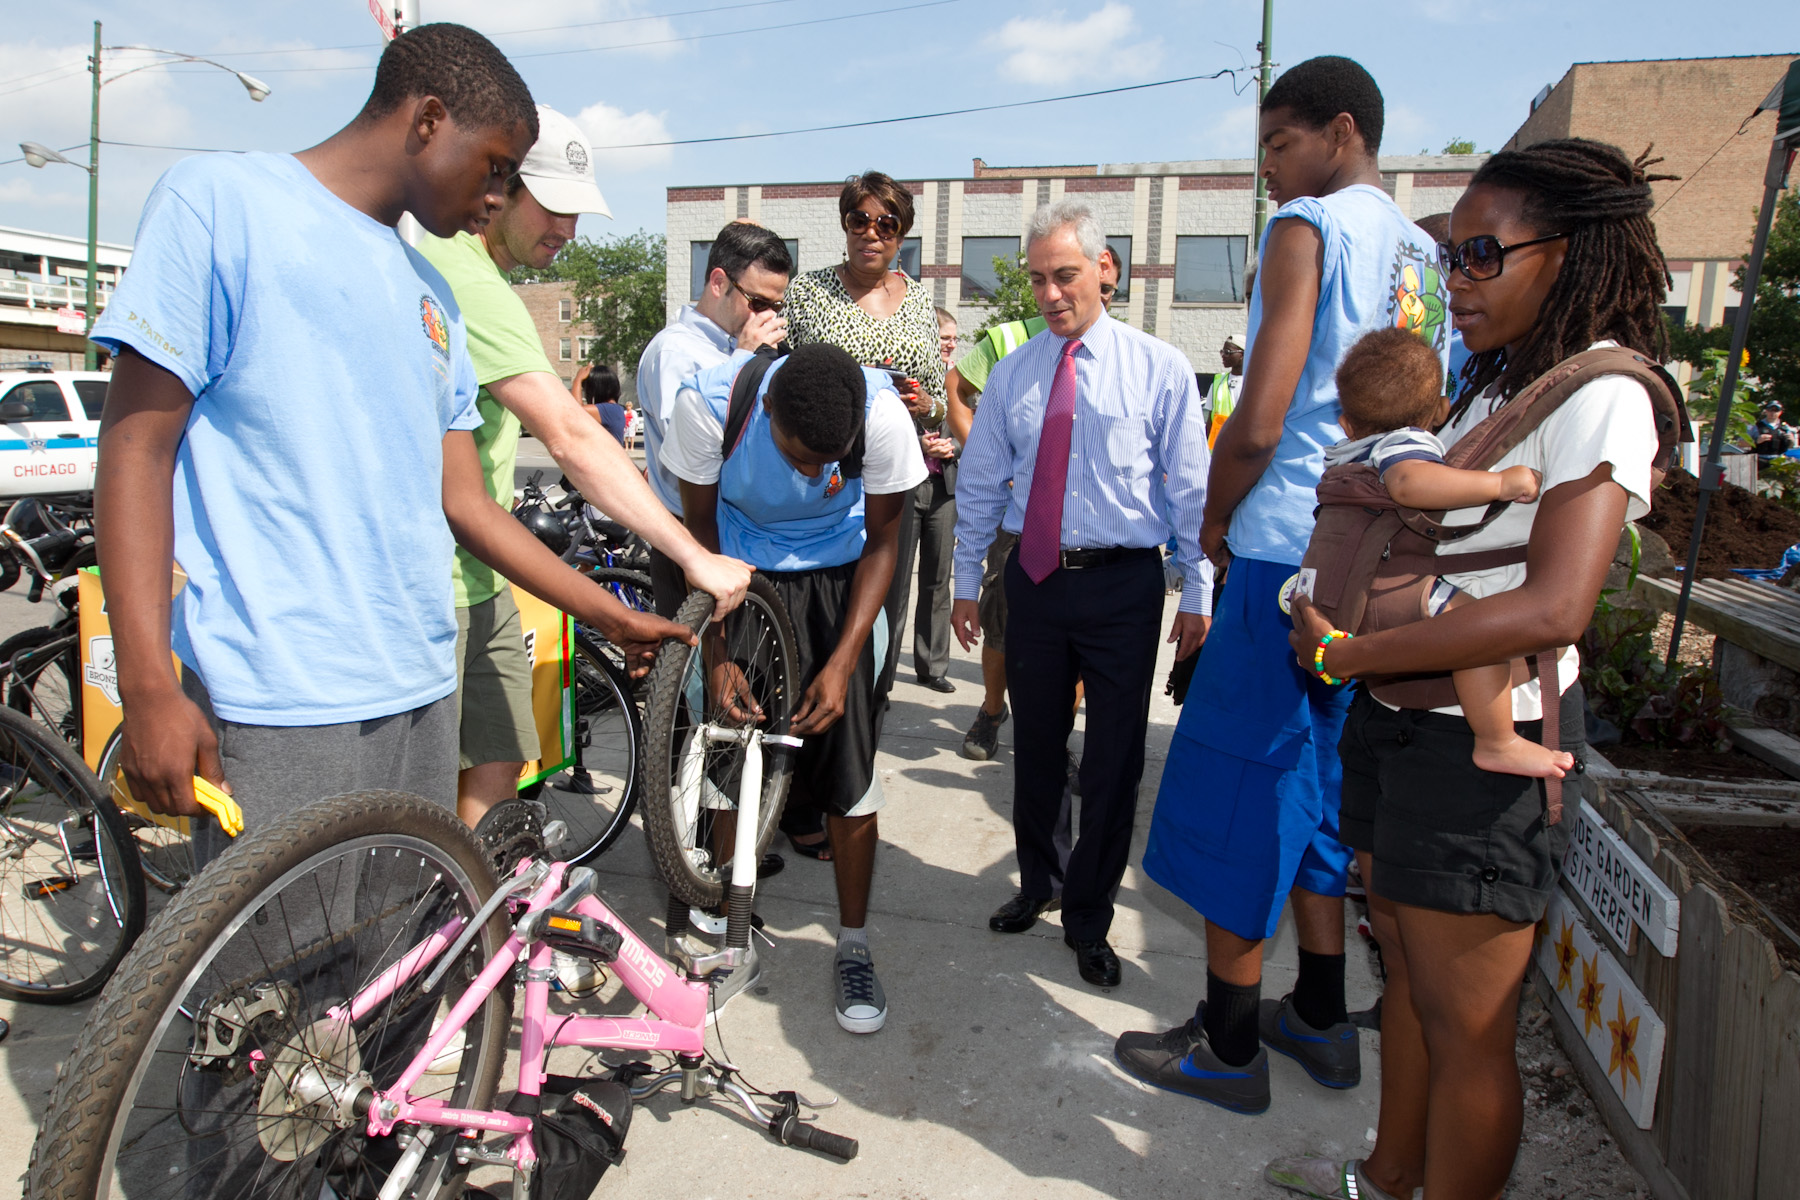 Mayor Emanuel visits with young people participating in Greencorps.